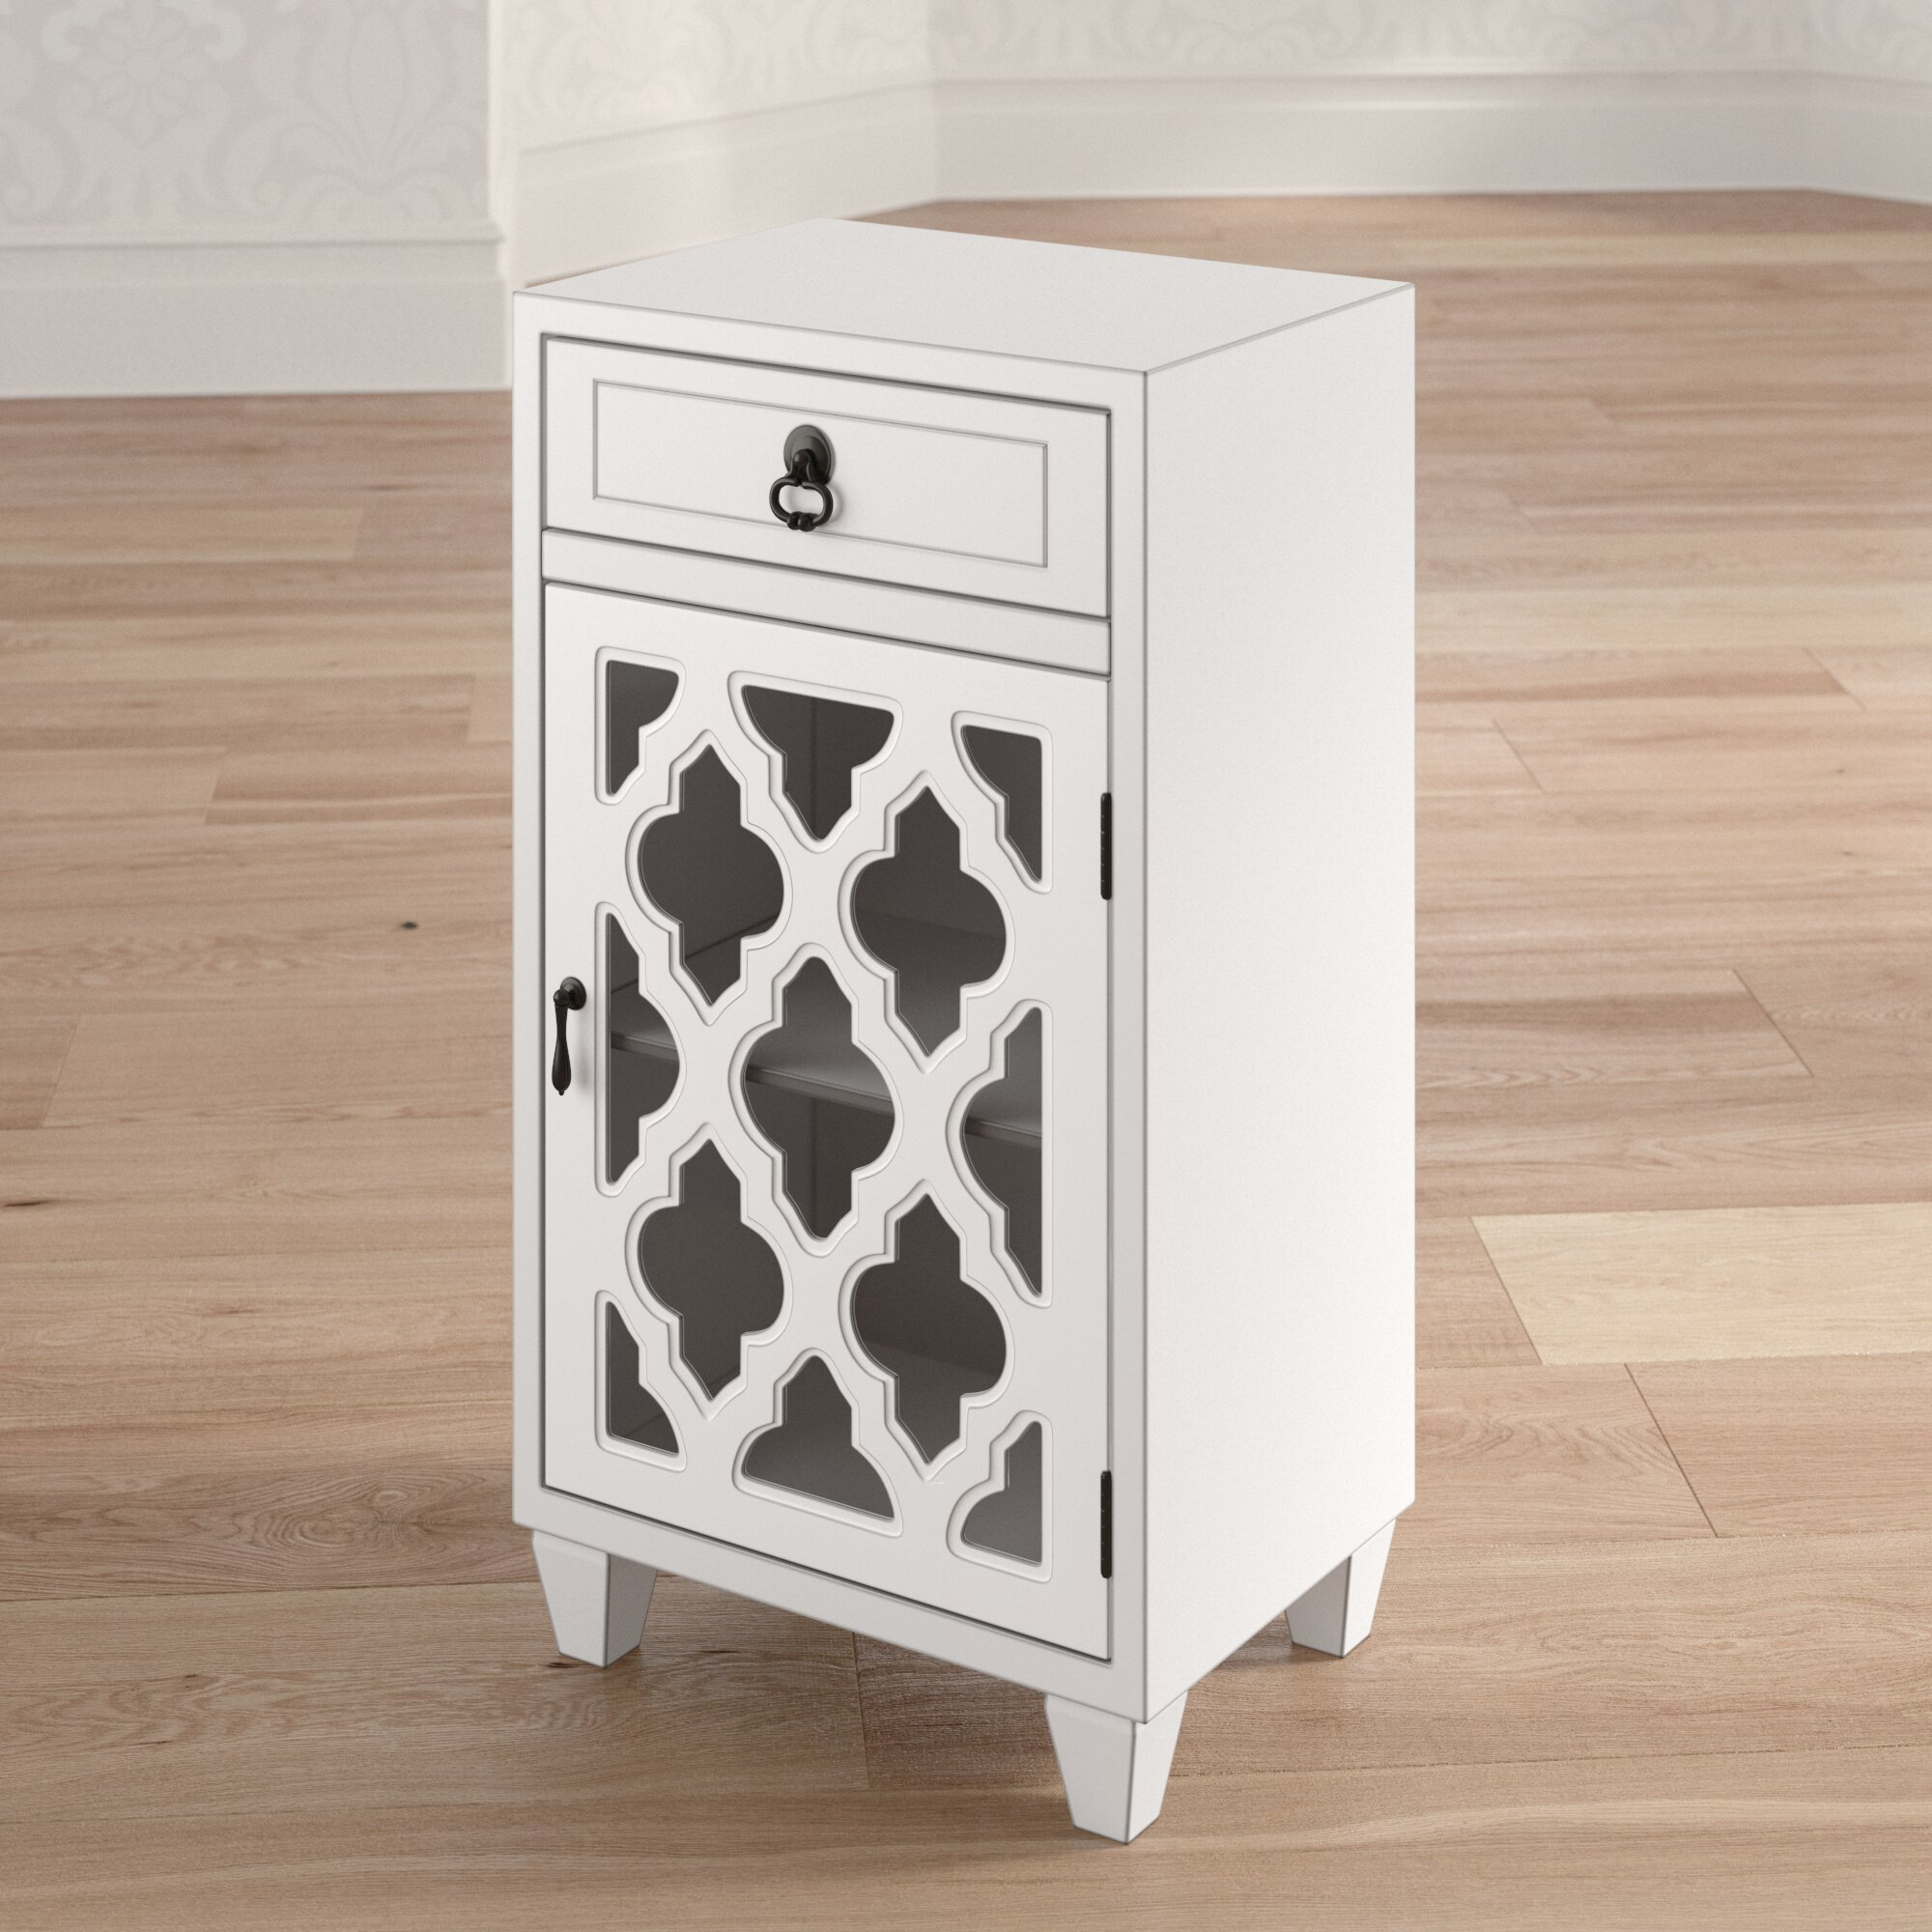 Mistana Fairhills 1 Drawer And 1 Door Accent Cabinet With Glass